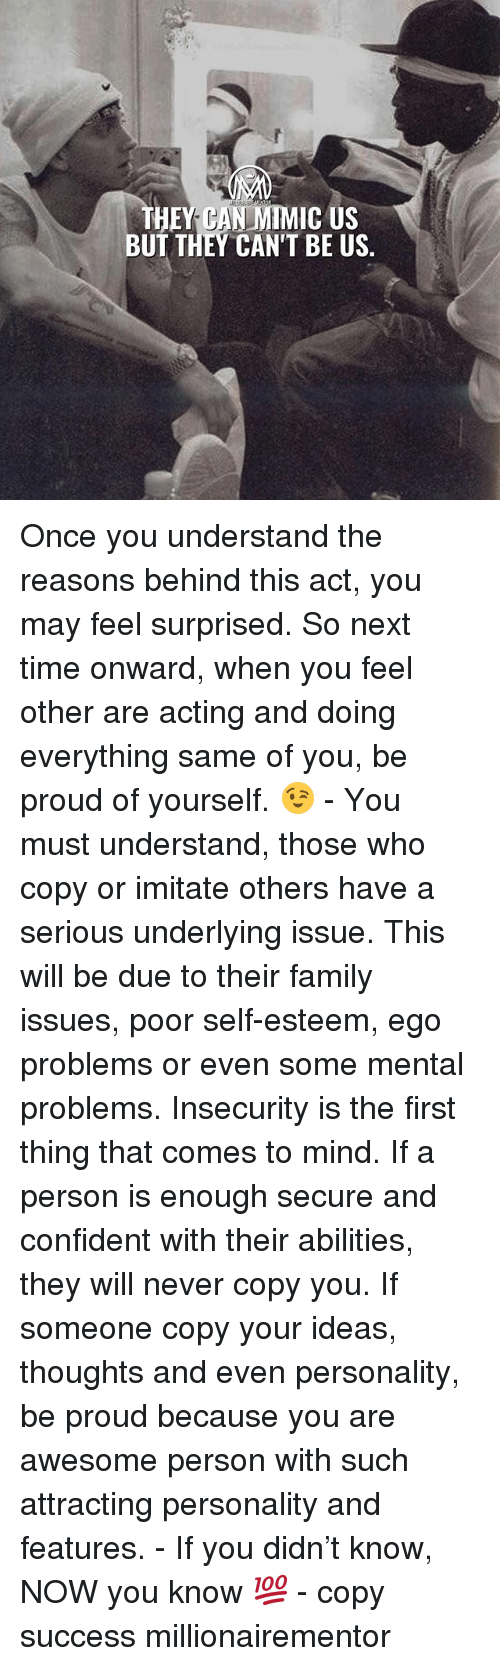 Family, Memes, and Time: BUT THEY CAN'T BE US Once you understand the reasons behind this act, you may feel surprised. So next time onward, when you feel other are acting and doing everything same of you, be proud of yourself. 😉 - You must understand, those who copy or imitate others have a serious underlying issue. This will be due to their family issues, poor self-esteem, ego problems or even some mental problems. Insecurity is the first thing that comes to mind. If a person is enough secure and confident with their abilities, they will never copy you. If someone copy your ideas, thoughts and even personality, be proud because you are awesome person with such attracting personality and features. - If you didn't know, NOW you know 💯 - copy success millionairementor